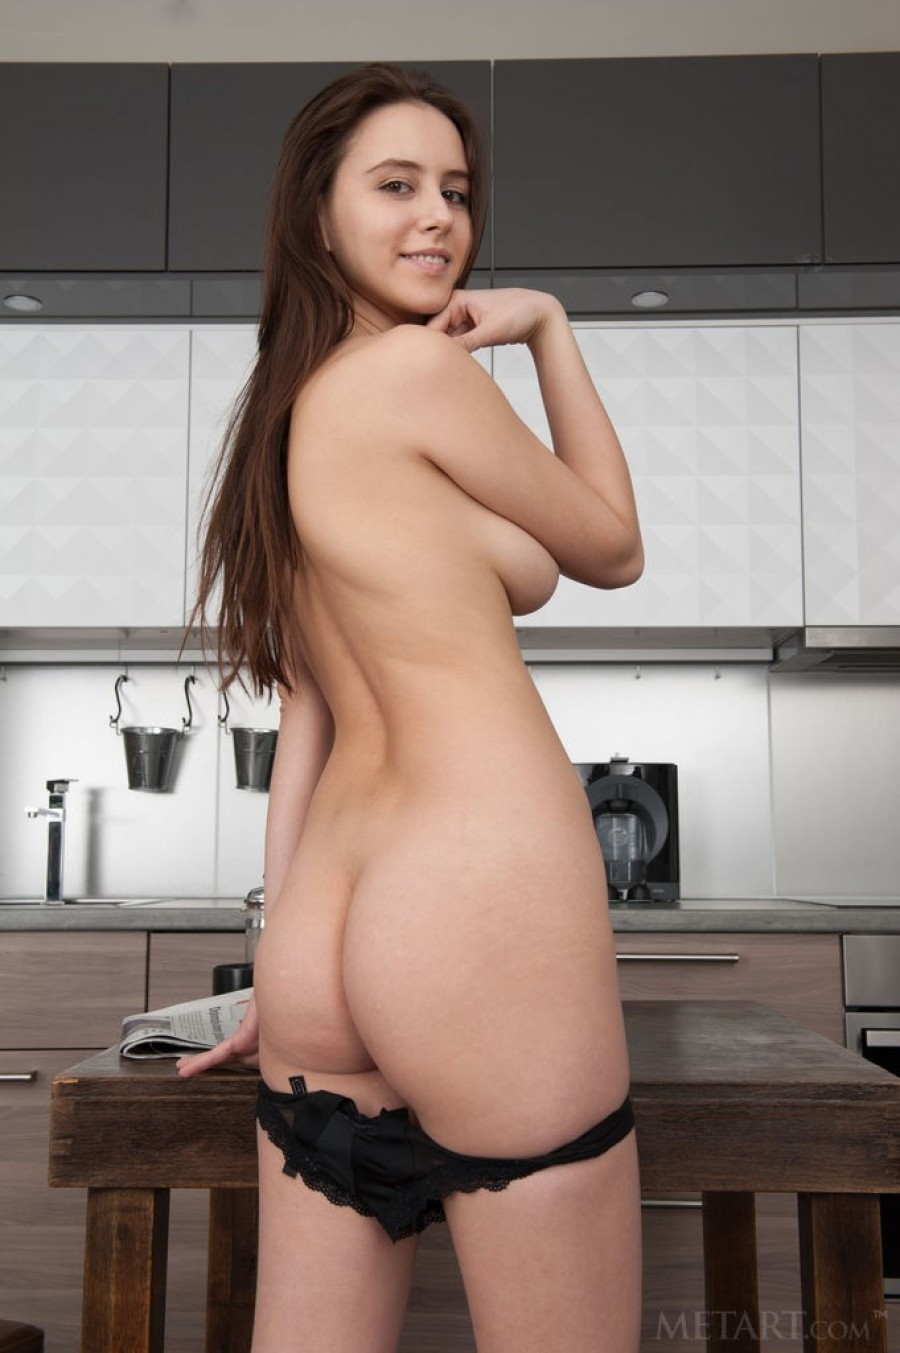 Brunette babe strips in the kitchen